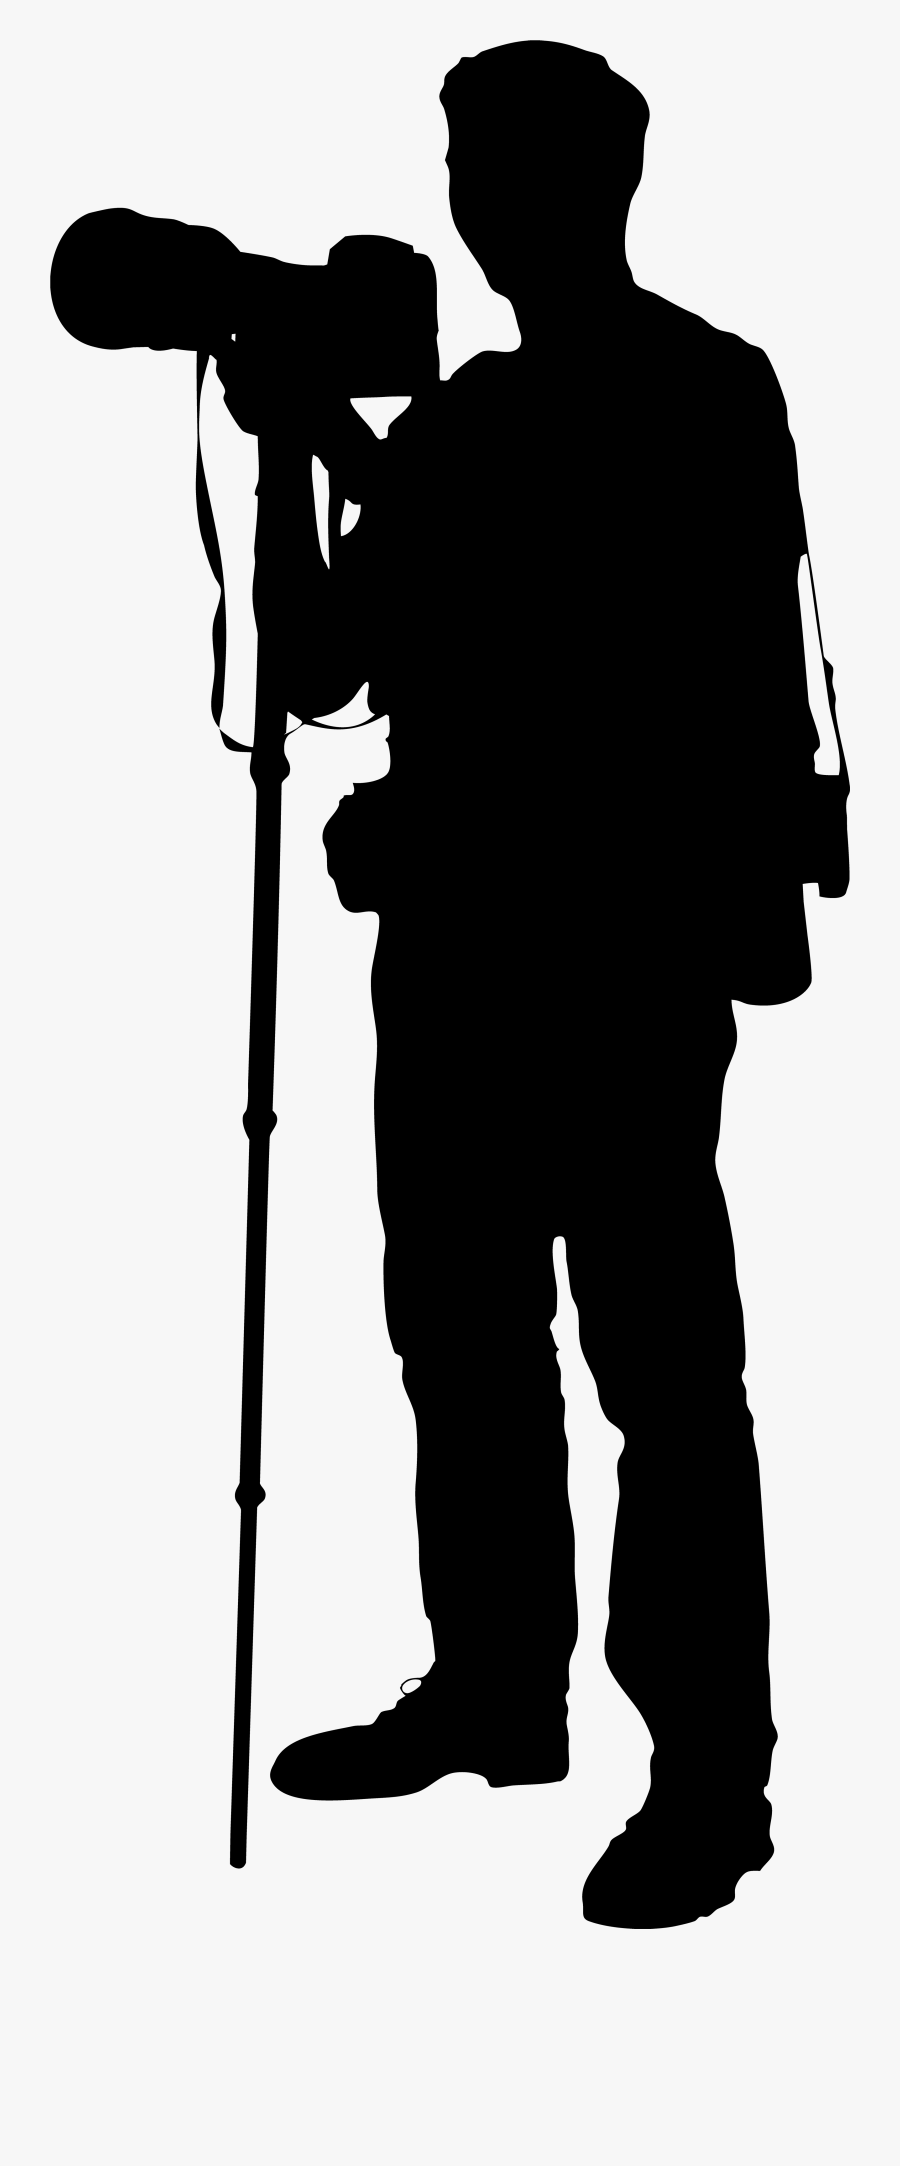 firefighter silhouette transparent firefighter silhouette png photographer silhouette firefighter